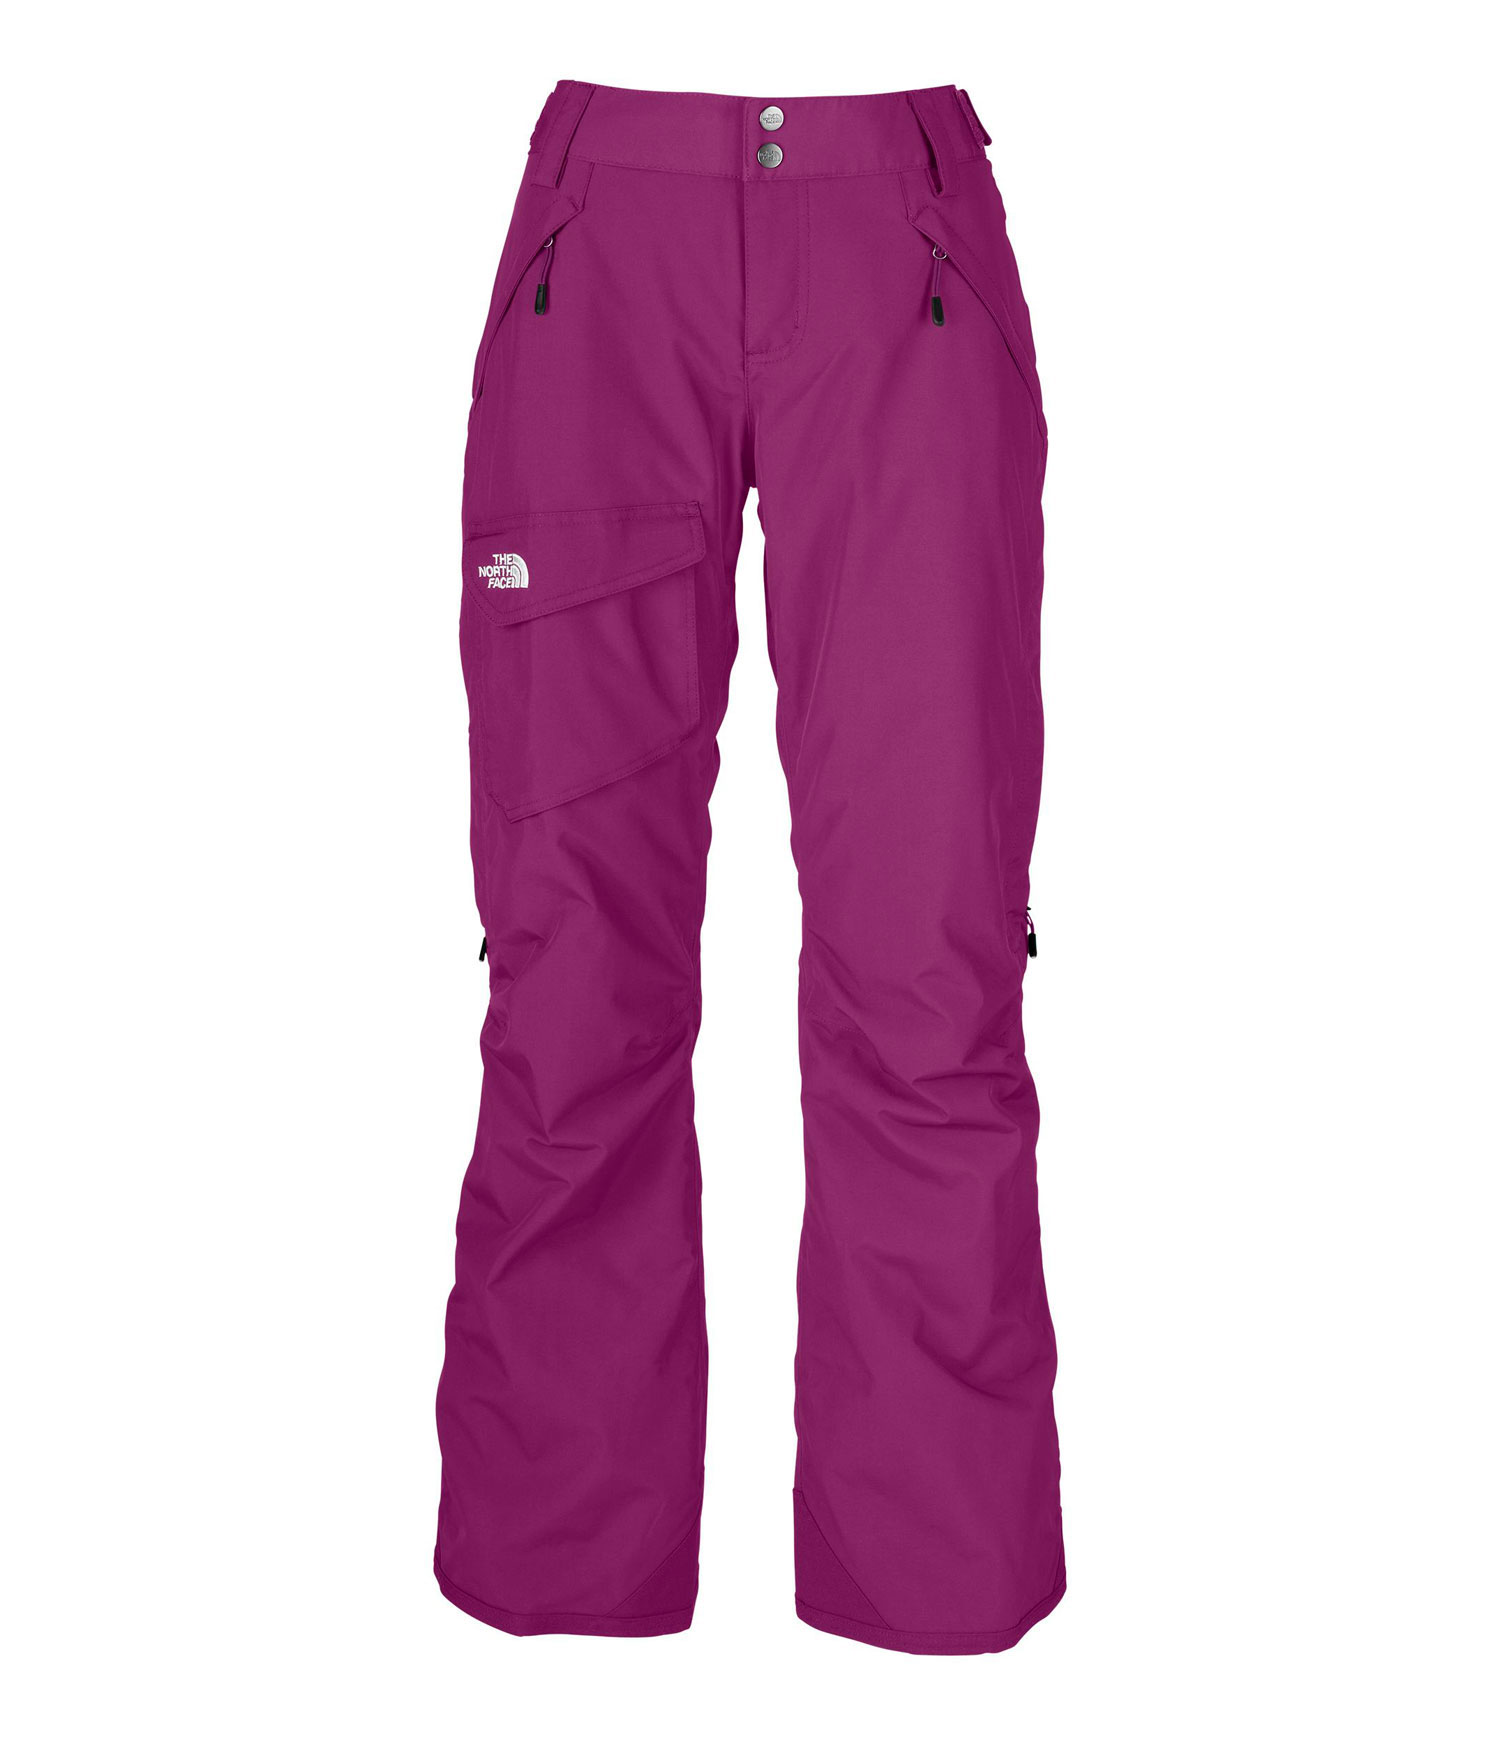 "Ski All-mountain, insulated, traditional pant made from waterproof, breathable fabric; has a feminine, low-rise cut and articulated knees for no-tug turns.Key Features of The North Face Freedom LRBC Insulated Ski Pants: Avg Weight: 750 g (26.46 oz) Inseam: 31.5"" Fabric: shell: 210D x 235D 189 g/m2 HyVent® 2L—100% nylon faille Lining: recycled taffeta Insulation: 60 g Heatseeker™ Waterproof, breathable, fully seam sealed Adjustable waist tabs Handwarmer zip pockets Exterior thigh vents with mesh gussets Cargo pocket Low-rise cut Articulated knees StretchVent ™ gaiter with gripper elastic Chimney Venting™ system Reinforced cuffs Pant-a-lock compatible - $119.95"